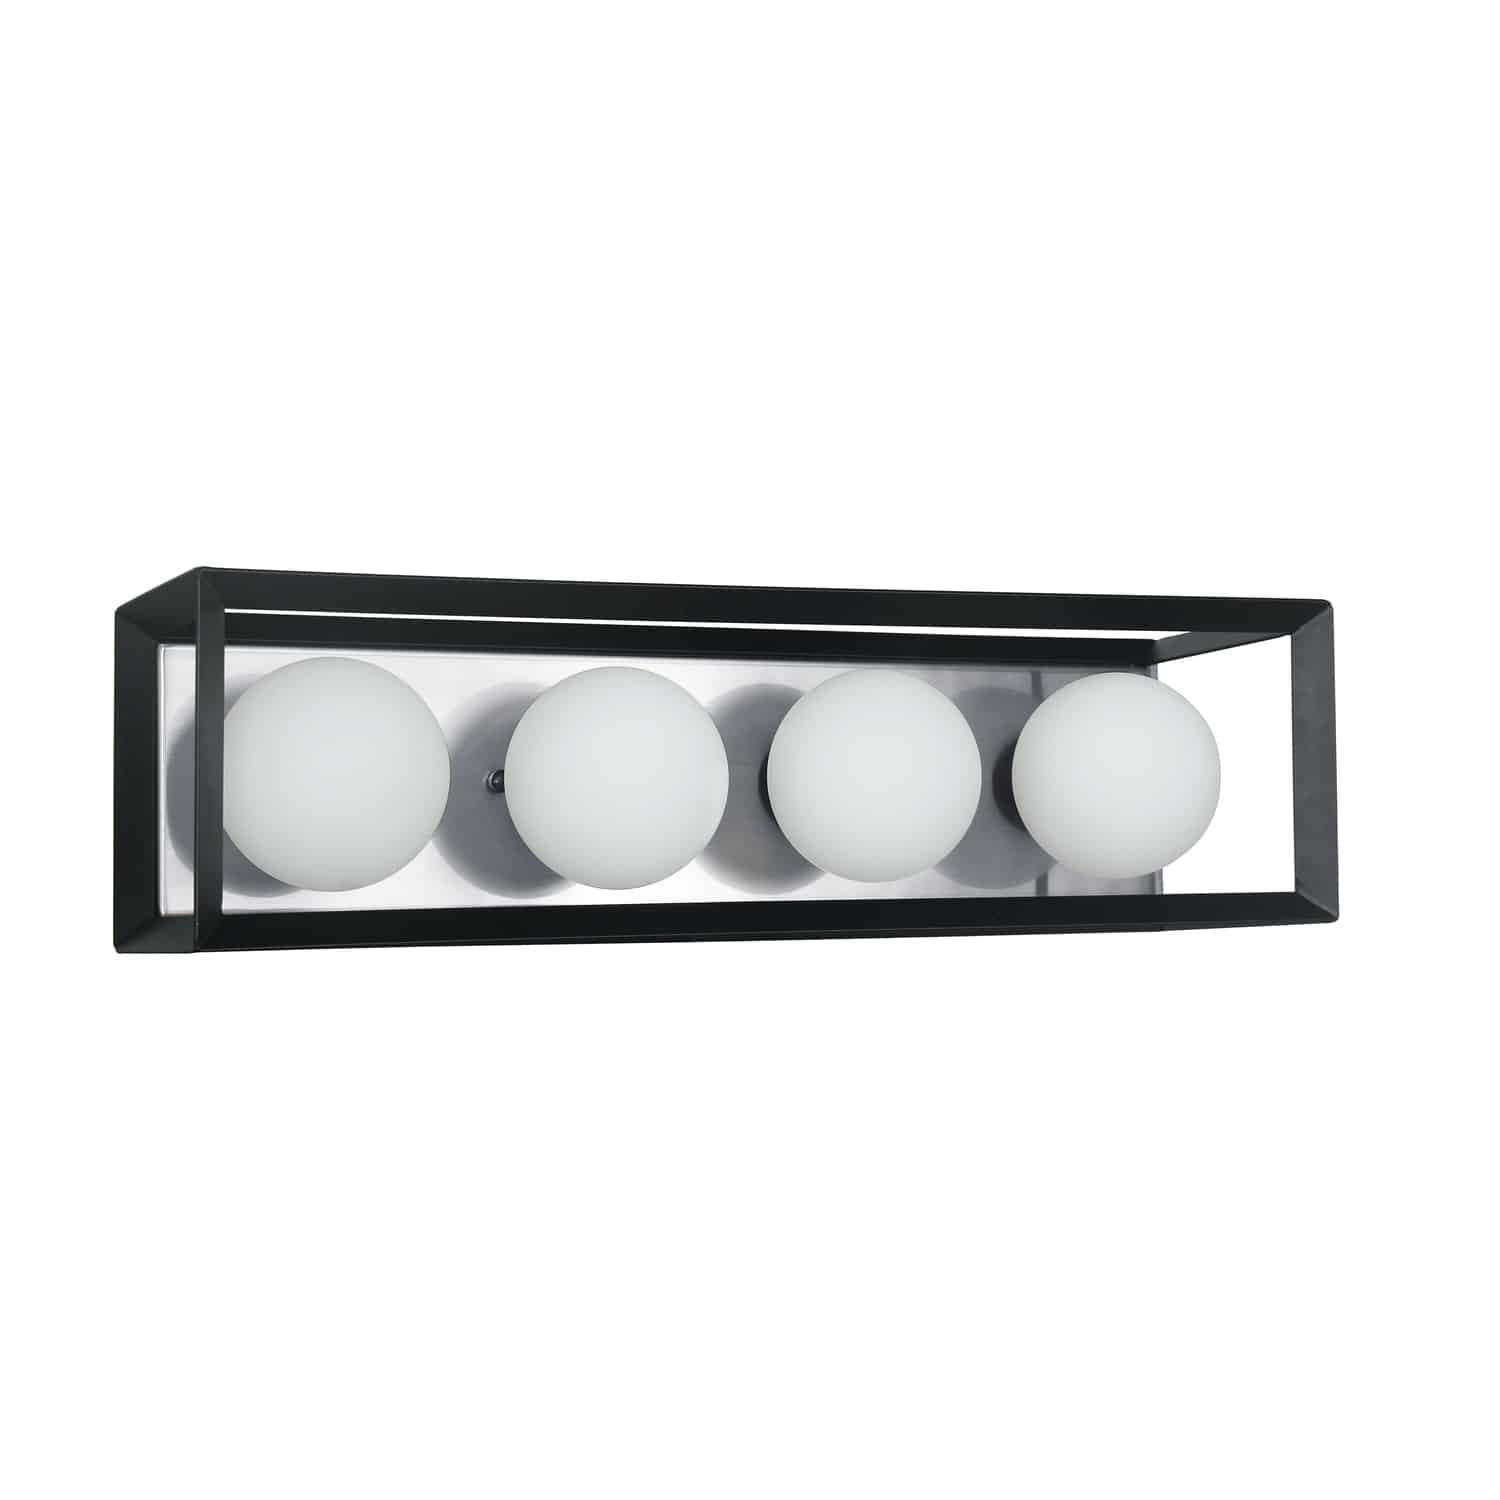 4 Light Halogen Vanity Black and Polished Chrome Finish